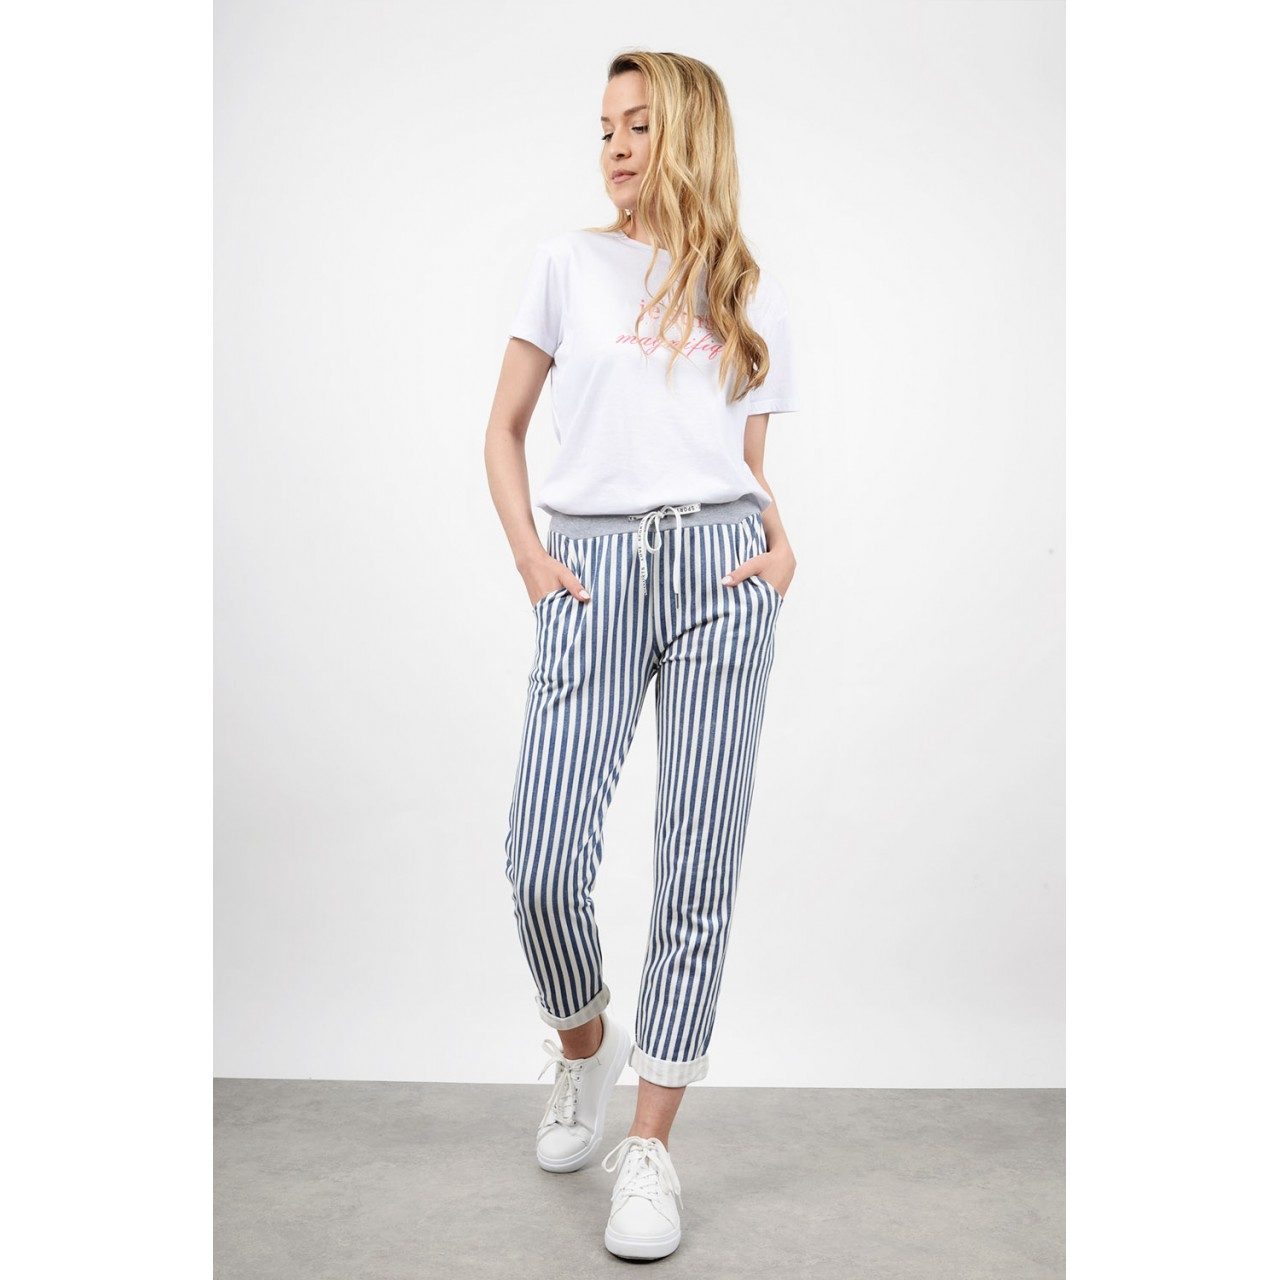 Striped pant with pockets